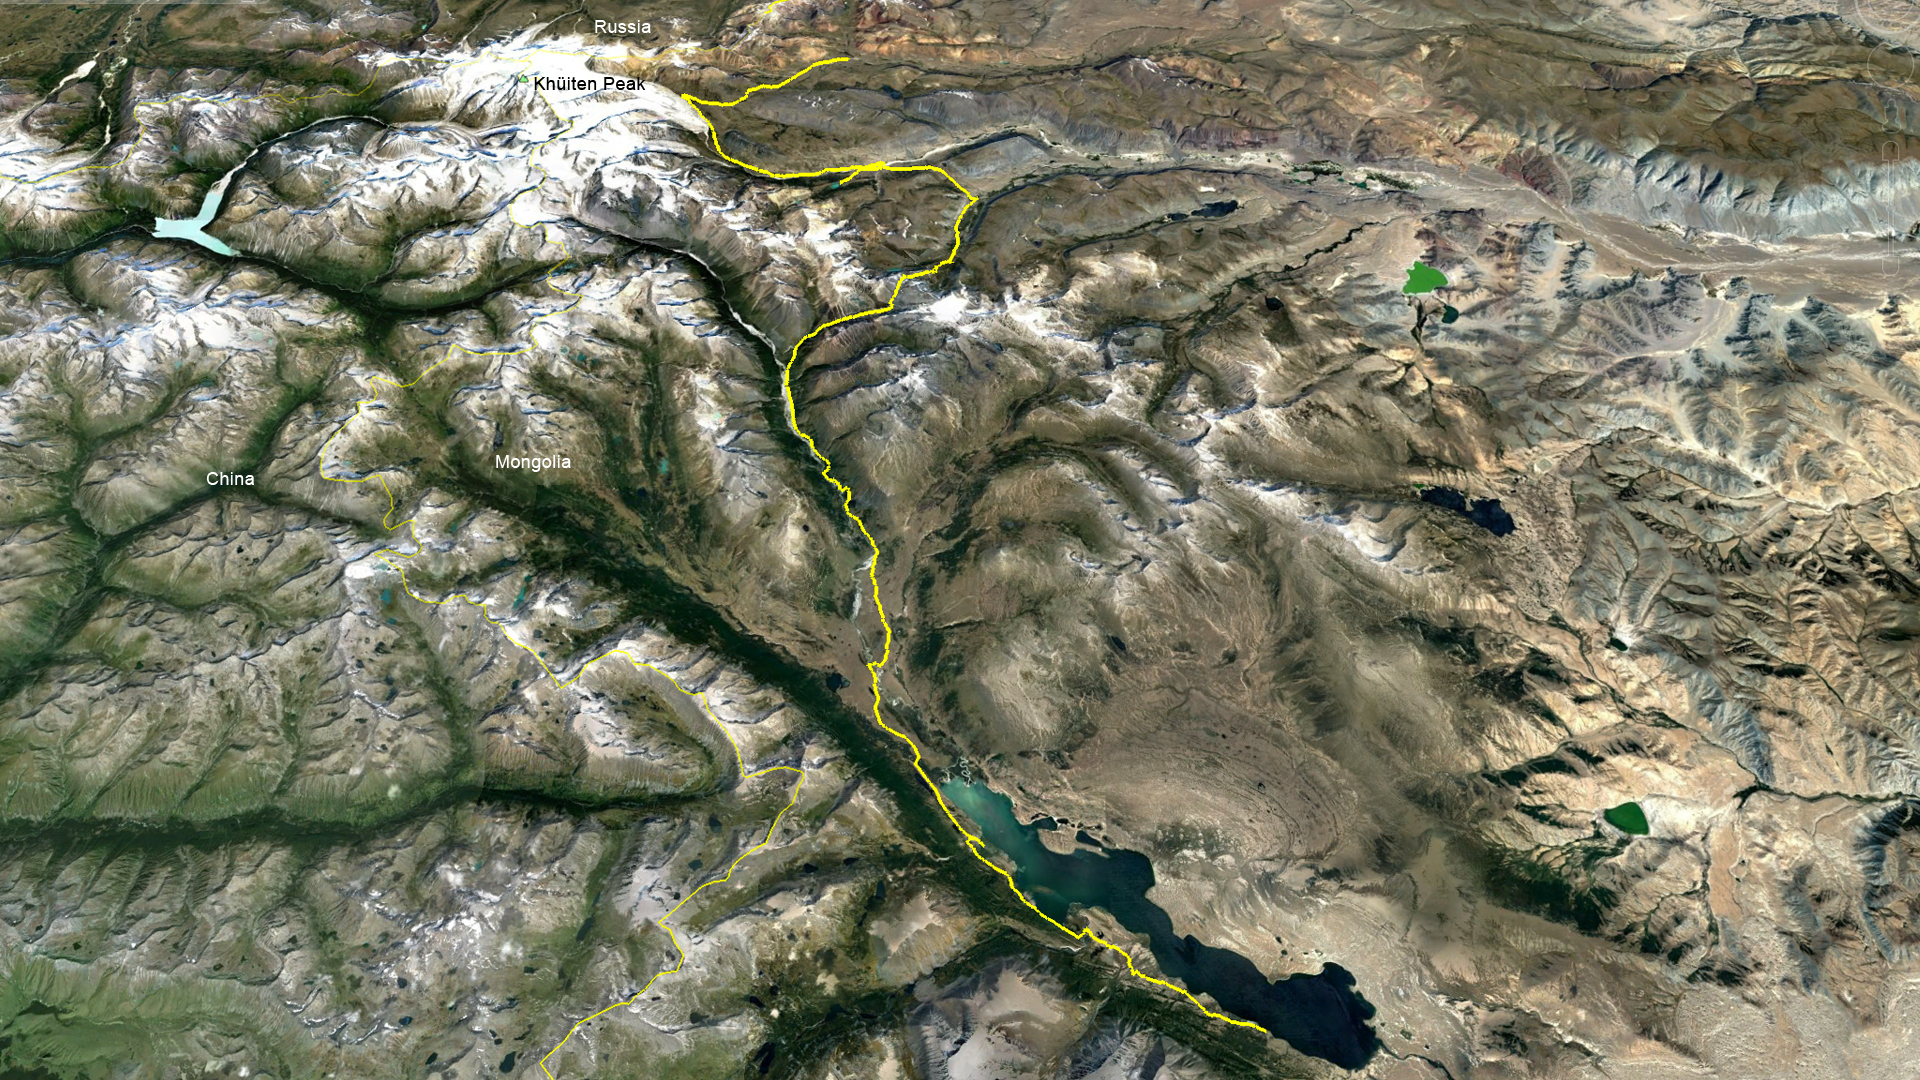 Ariel view of our path through the Altai Tavan Bogd National Park in Mongolia